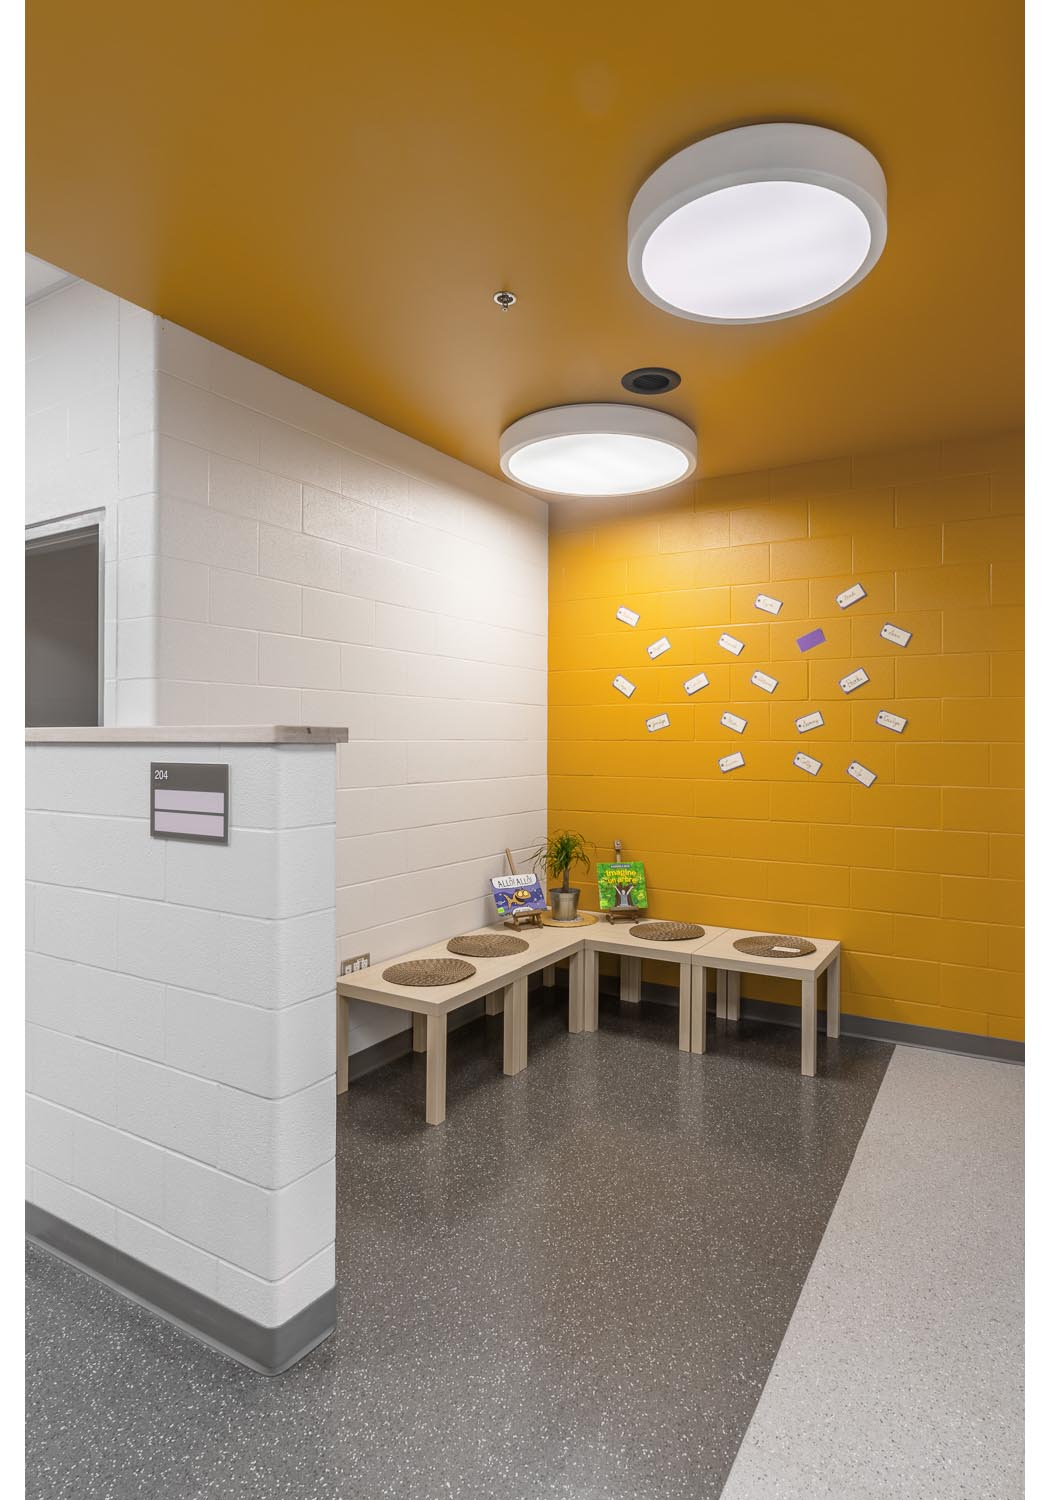 Ecole Rivière Rouge Elementary, interior photo of classroom entry nook / Photo:  Lindsay Reid